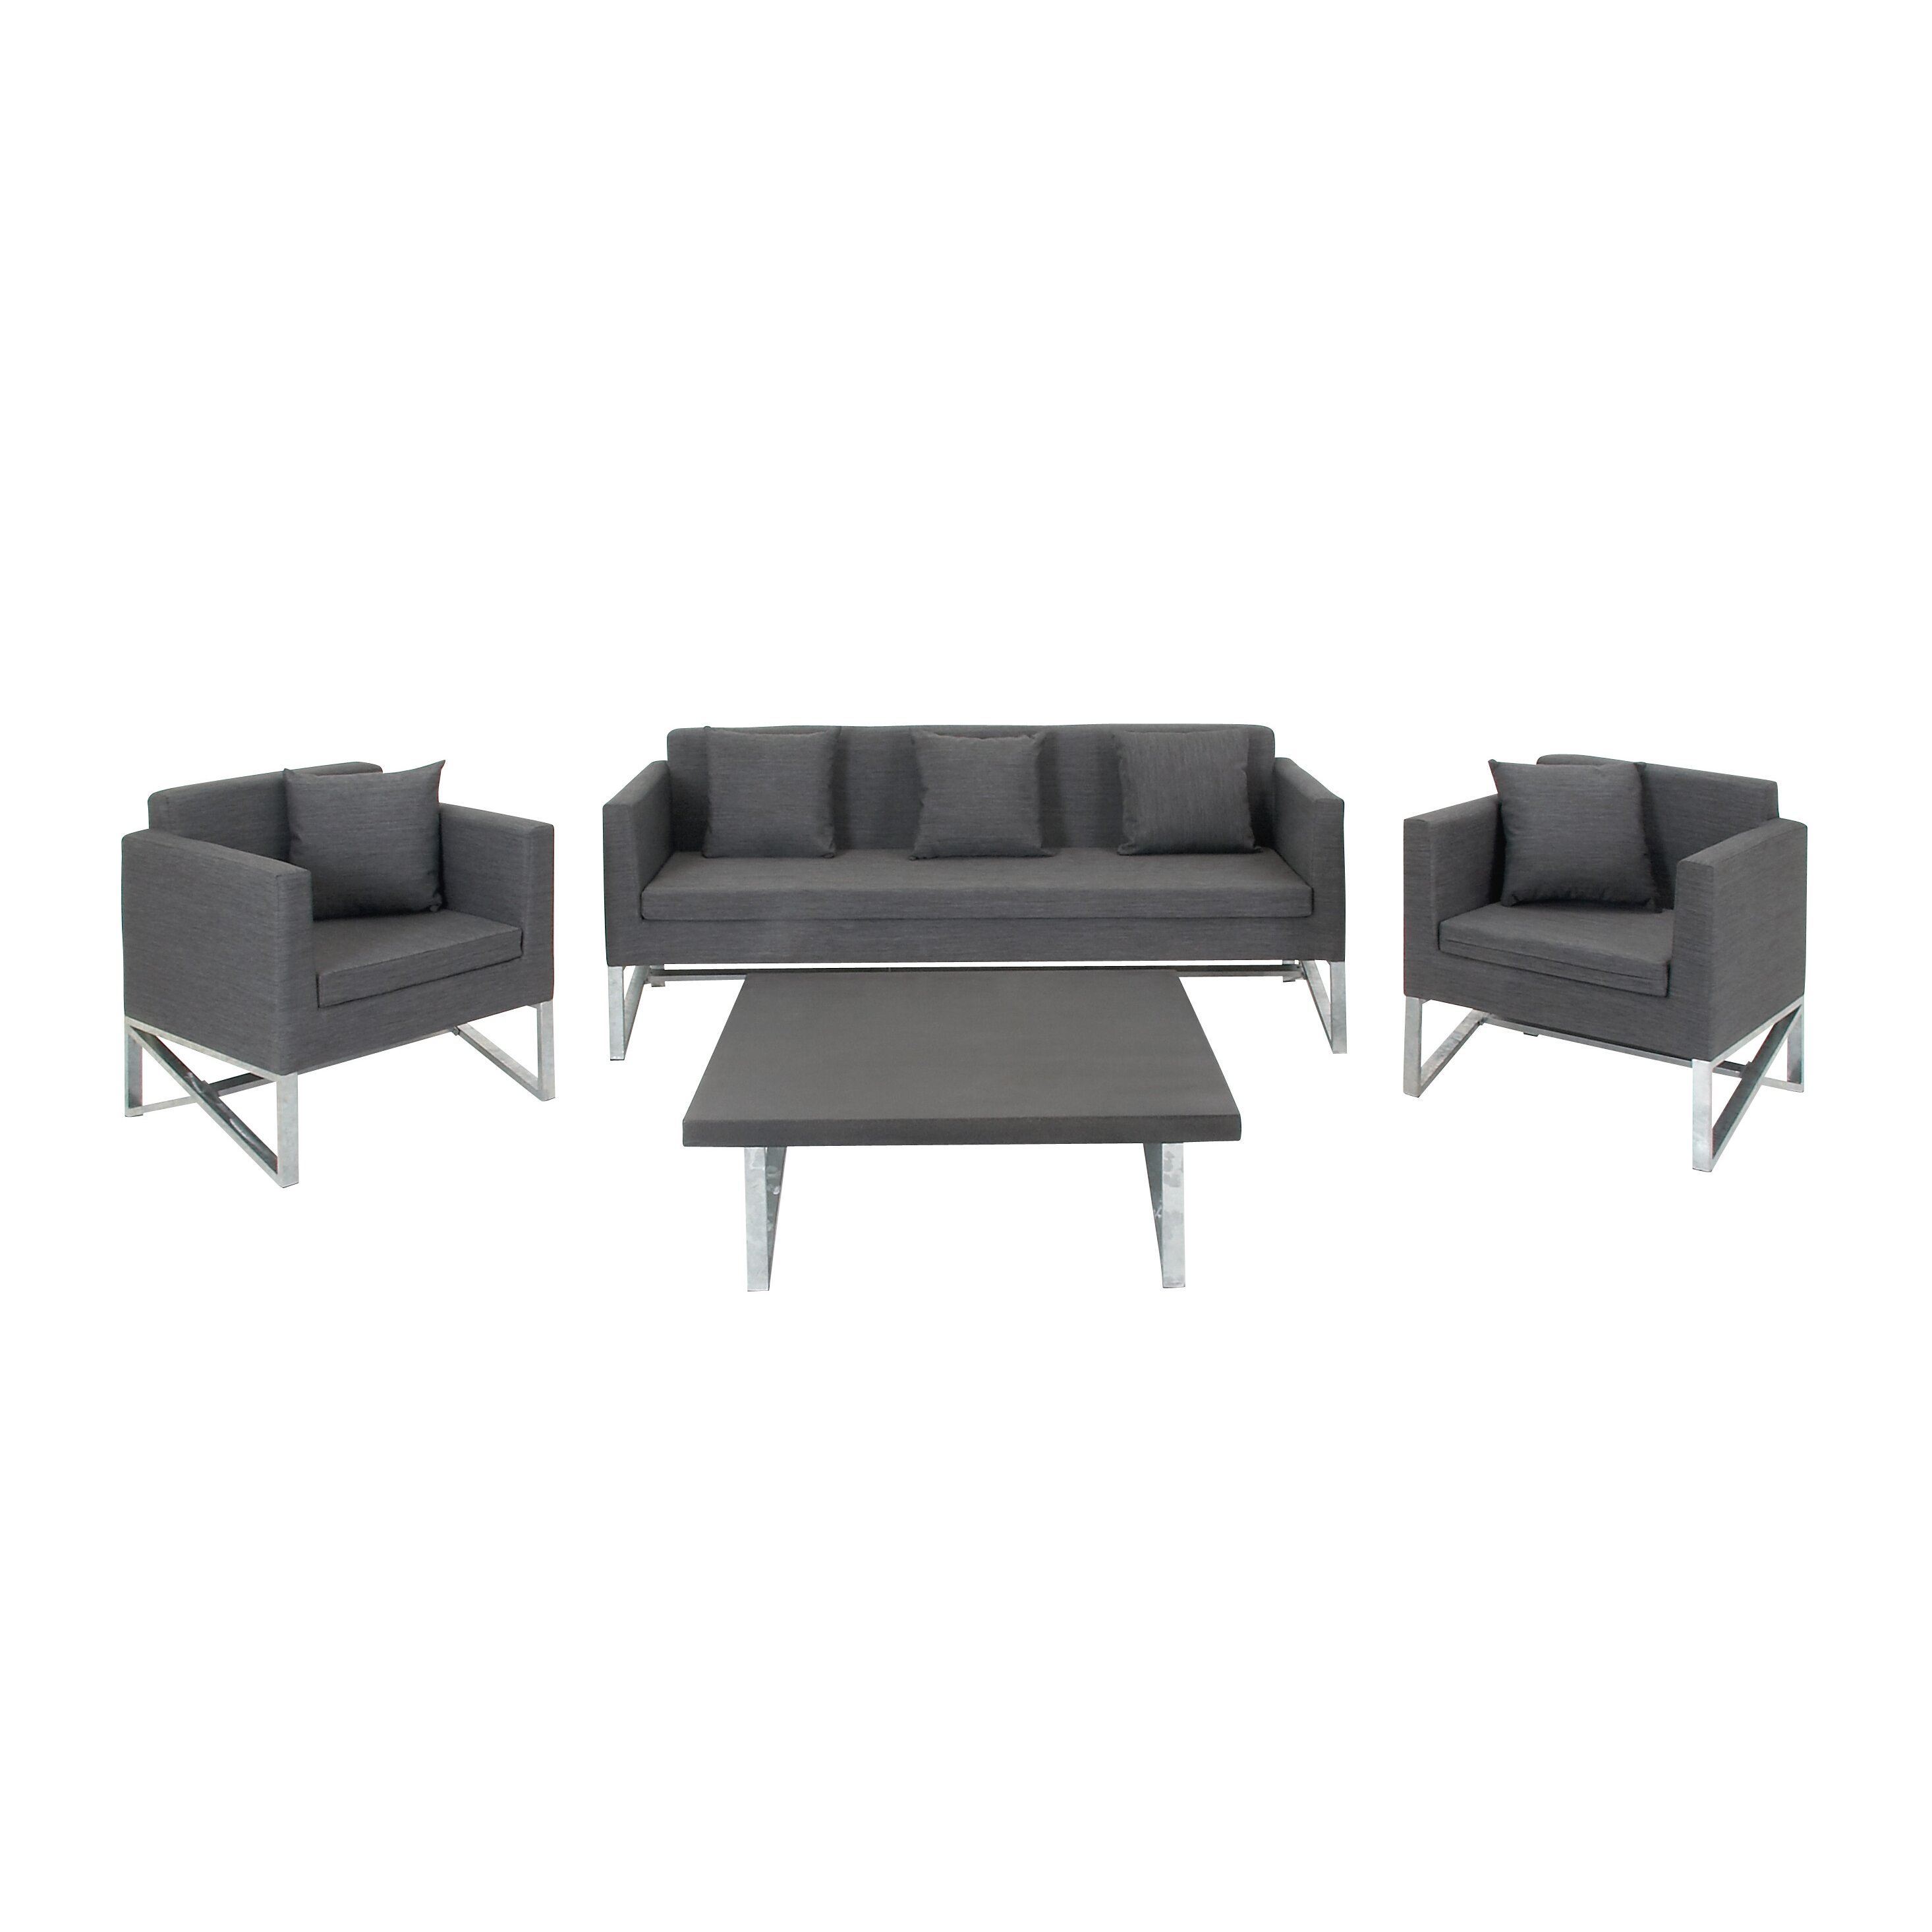 Carlene 4 piece living room set joss main for 4 piece living room set